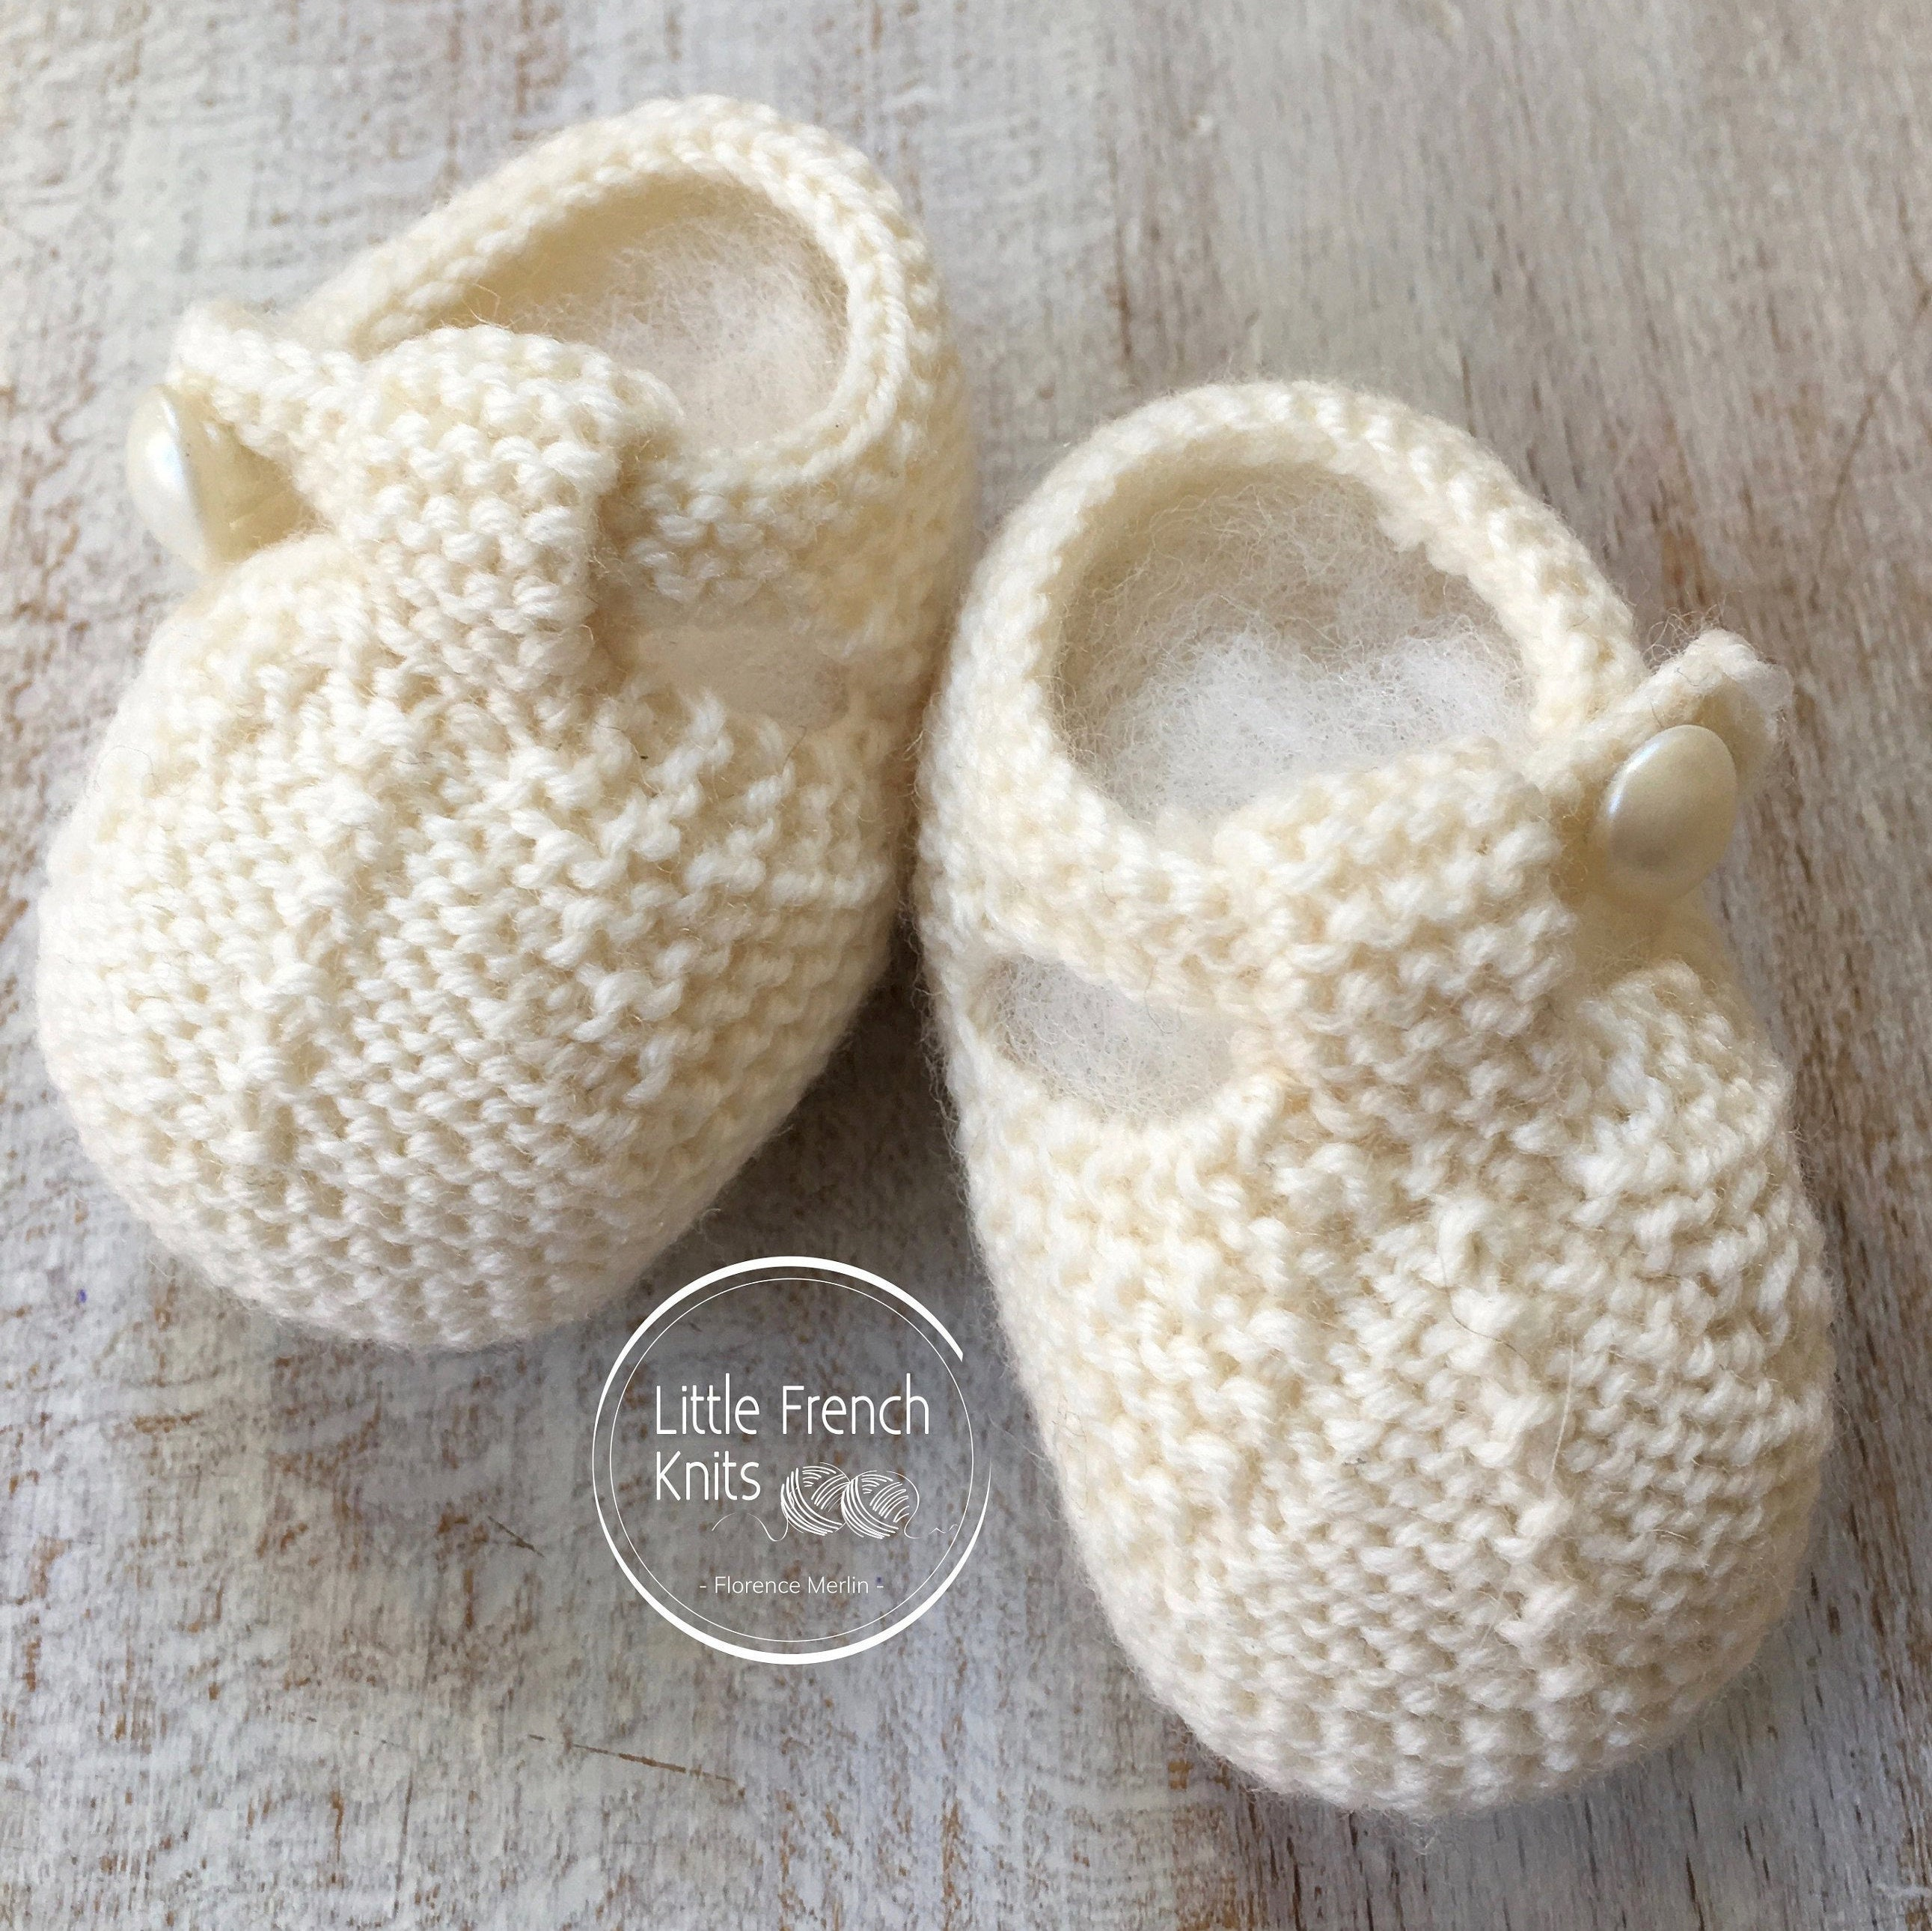 Baby Socks Knitting Patterns Knitting Pattern Ba Booties Instructions In English Instant Digital Download Pdf Sizes Newborn To 9 Months